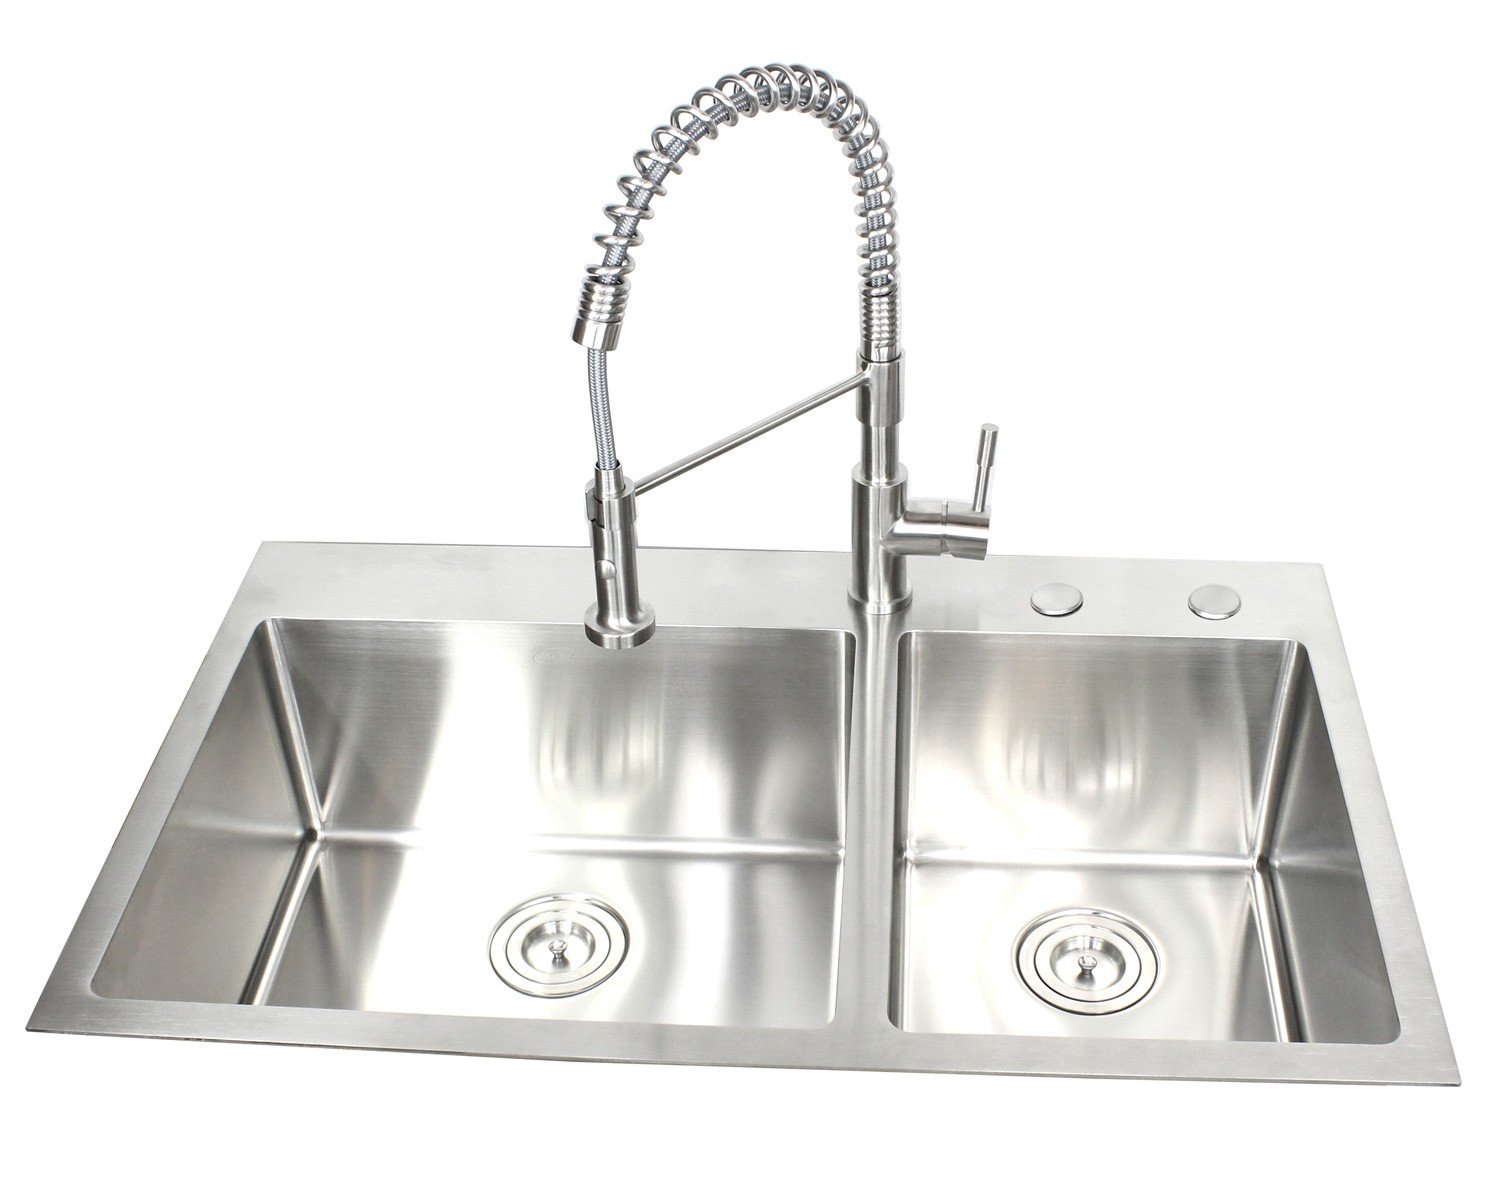 36 inch top mount   drop in stainless steel 60 40 double bowl kitchen sink 15mm radius design 36 inch top mount   drop in stainless steel 60 40 double bowl      rh   cbath com